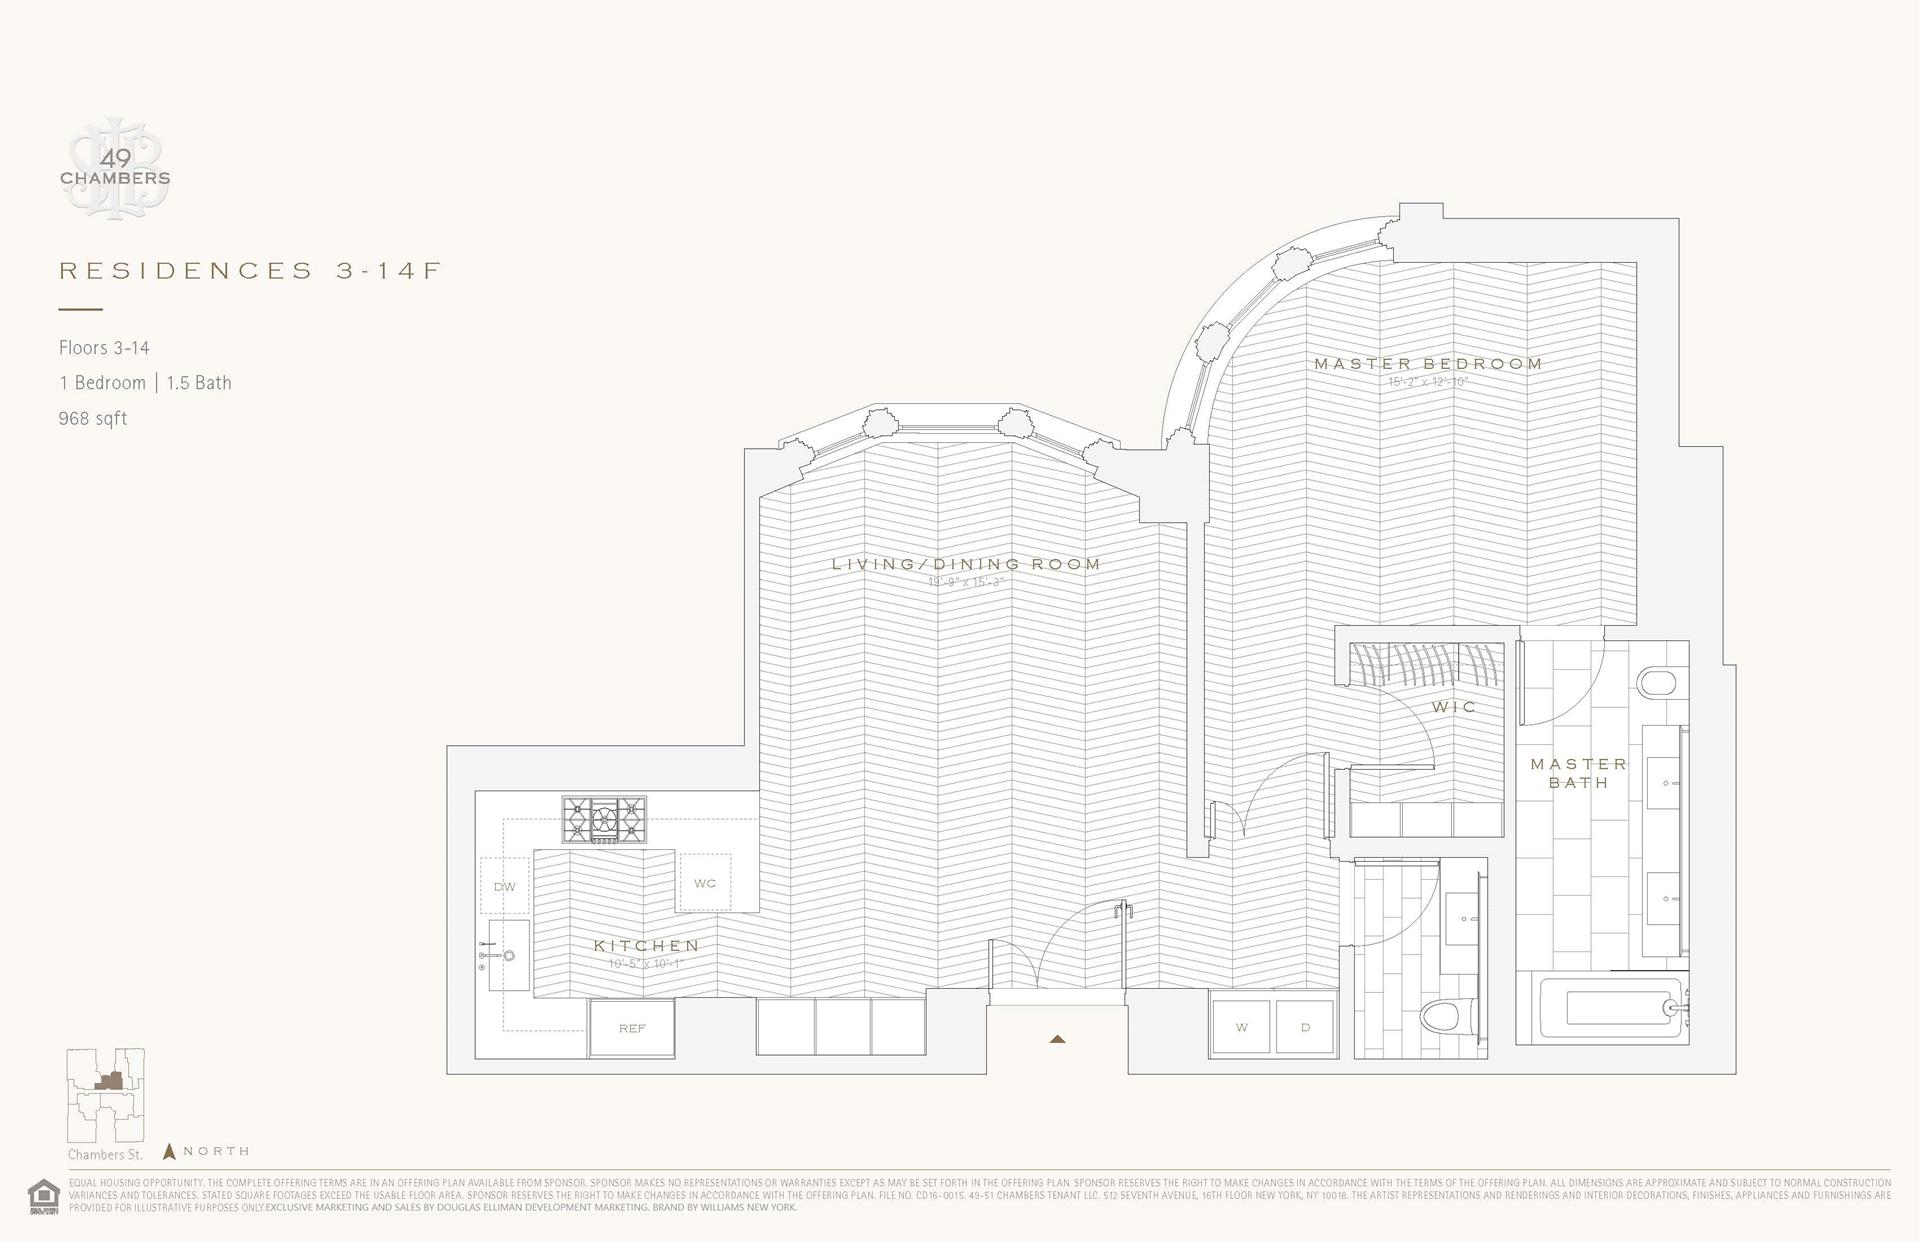 Floor plan of 49 Chambers St, 4F - TriBeCa, New York